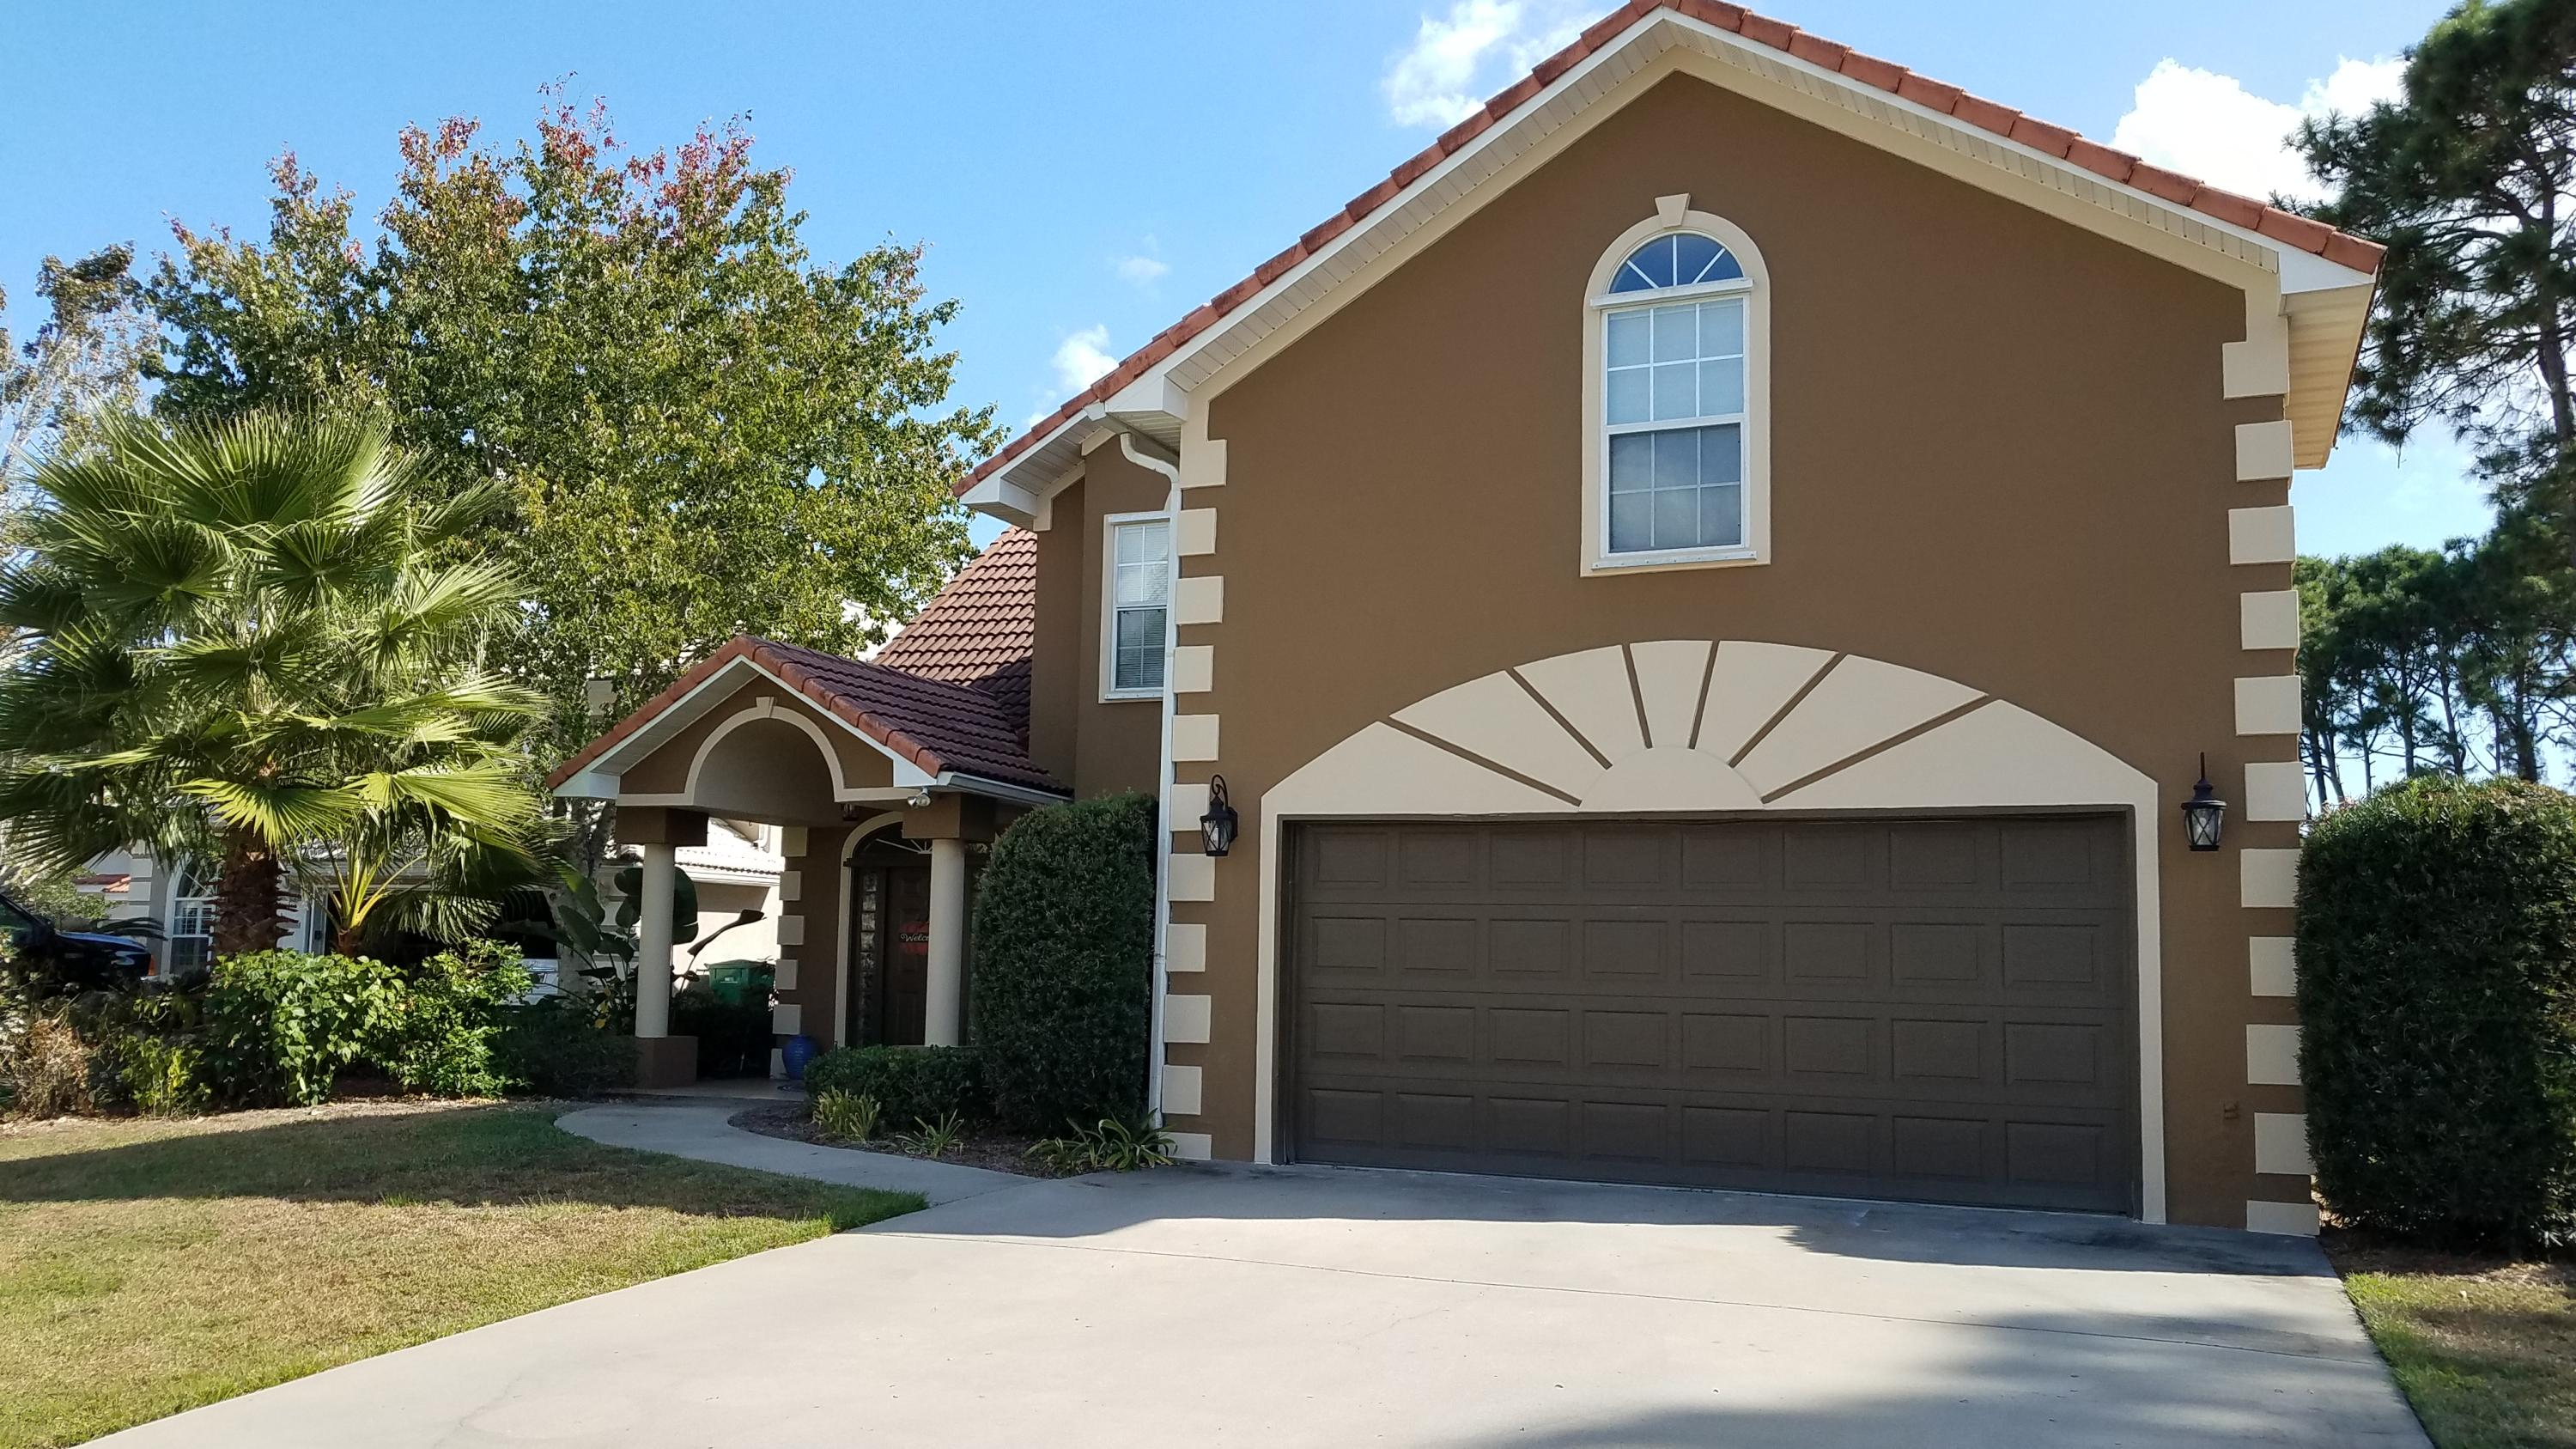 This spacious newly updated home is in Emerald Bay, a gated community, located on the 4th hole of th